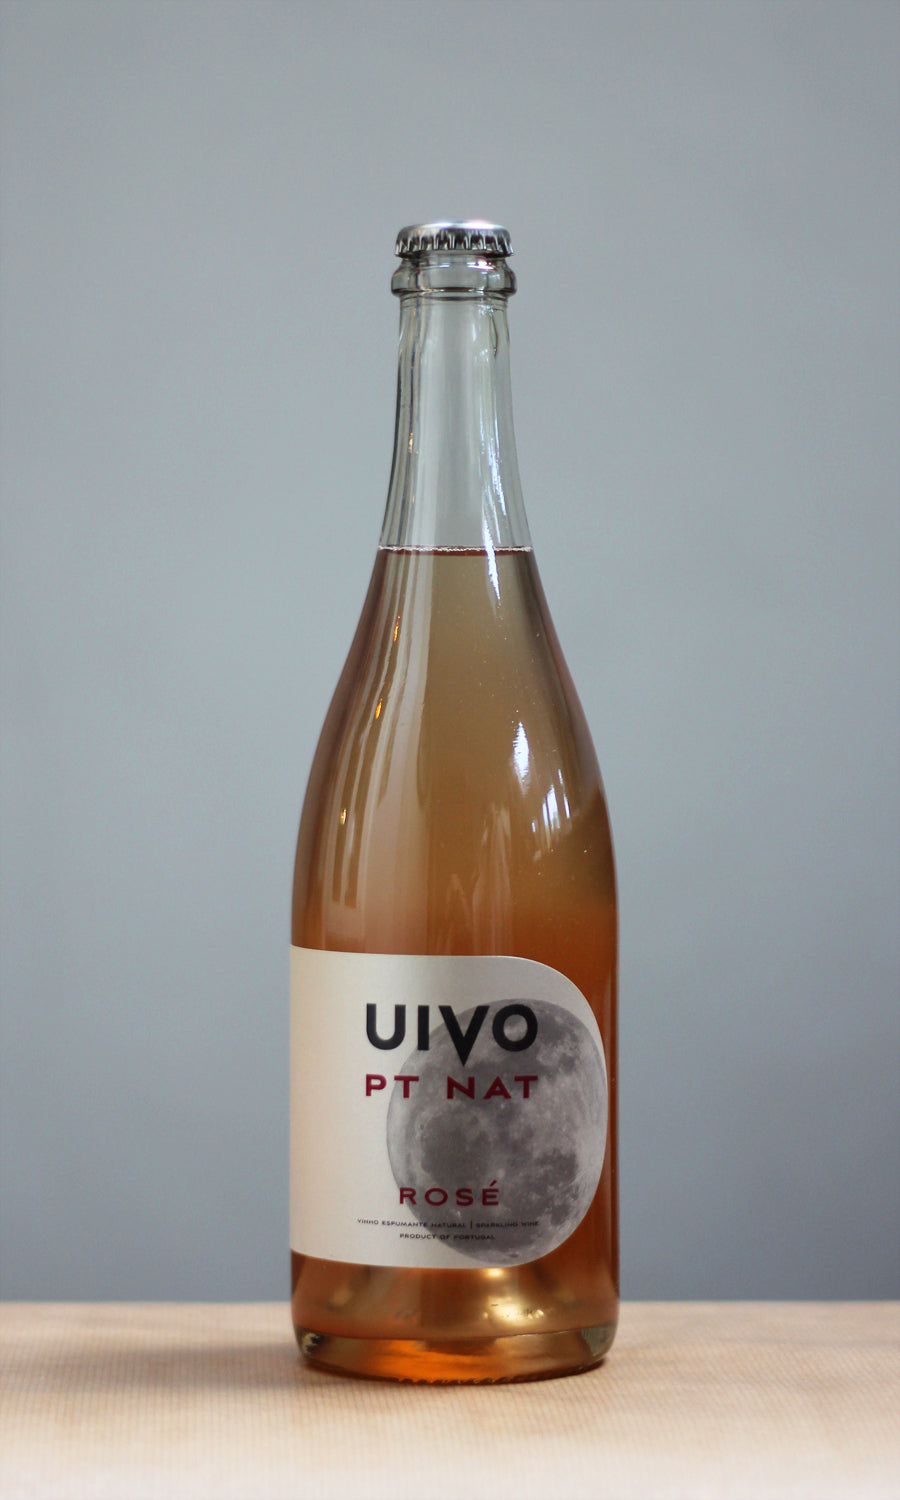 Folias de Baco - Uivo Rosé Pet Nat 2019